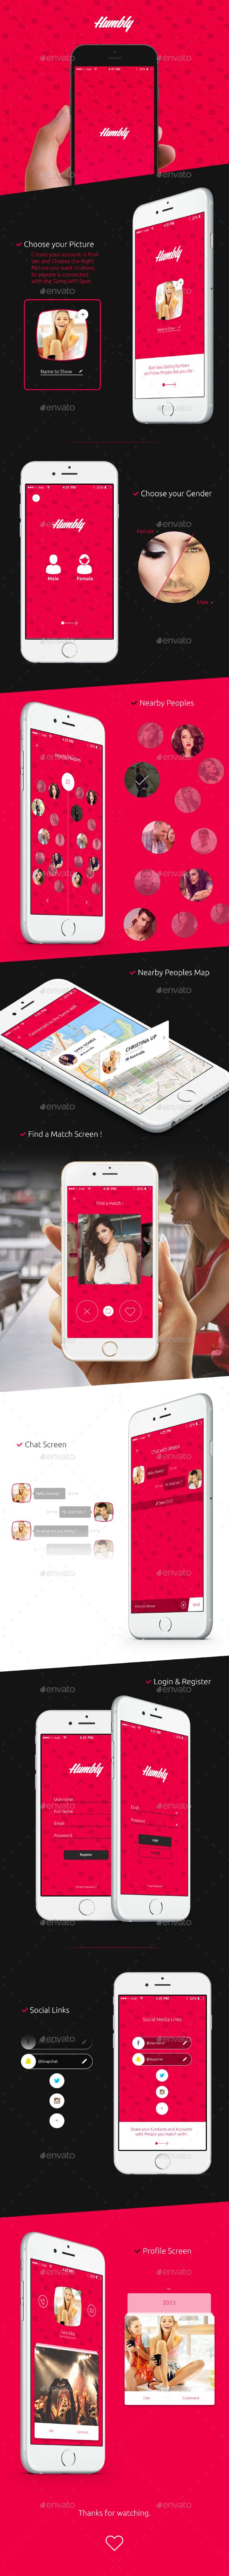 Humbly - Dating Mobile App User Interface Design Template PSD #design #ui Download: http://graphicriver.net/item/humbly-dating-mobile-app-ui-design/13134265?ref=ksioks